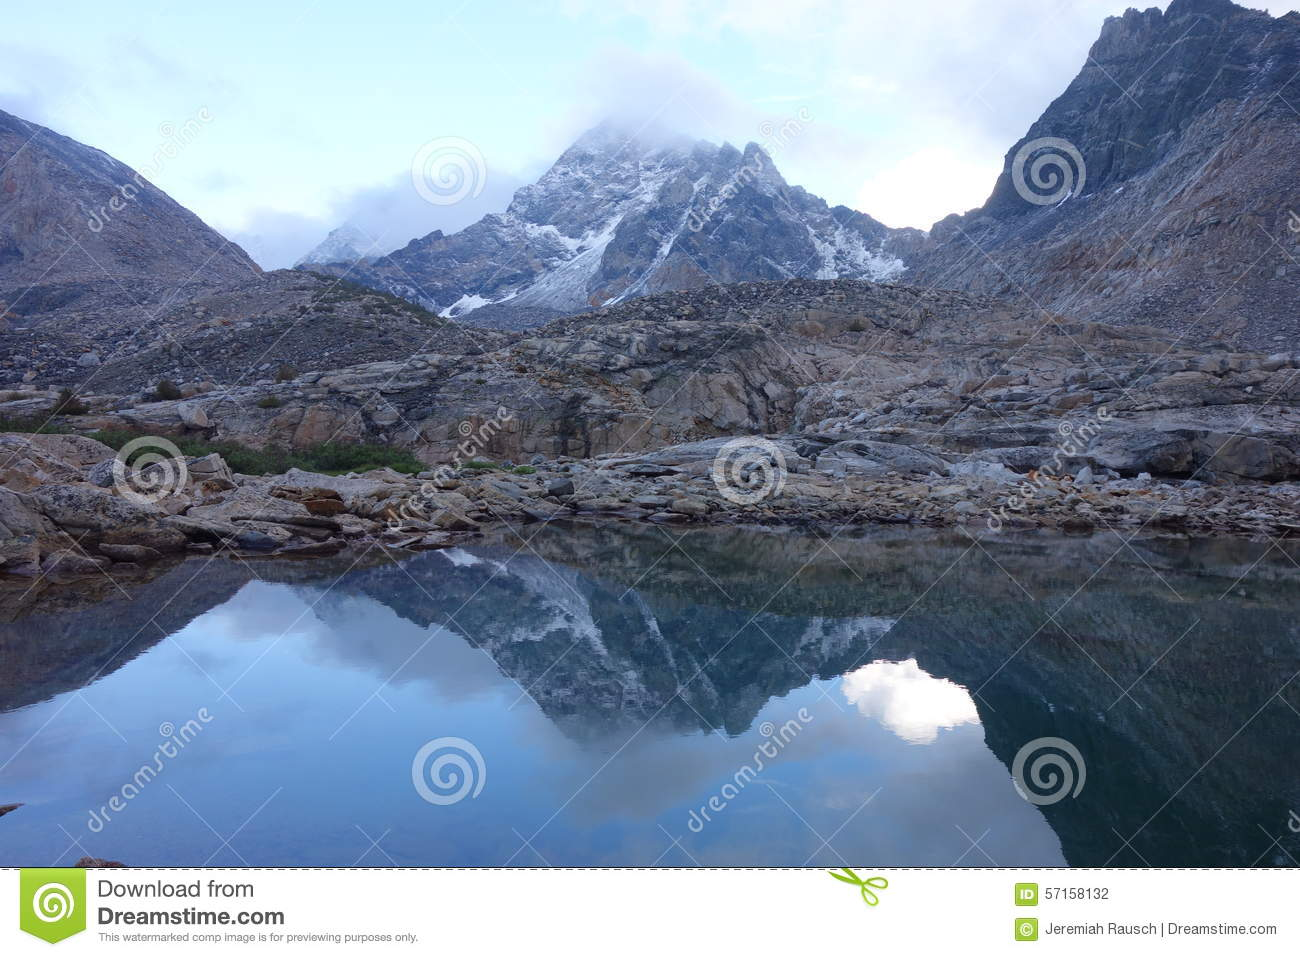 Mountain Reflection in Water with clouds